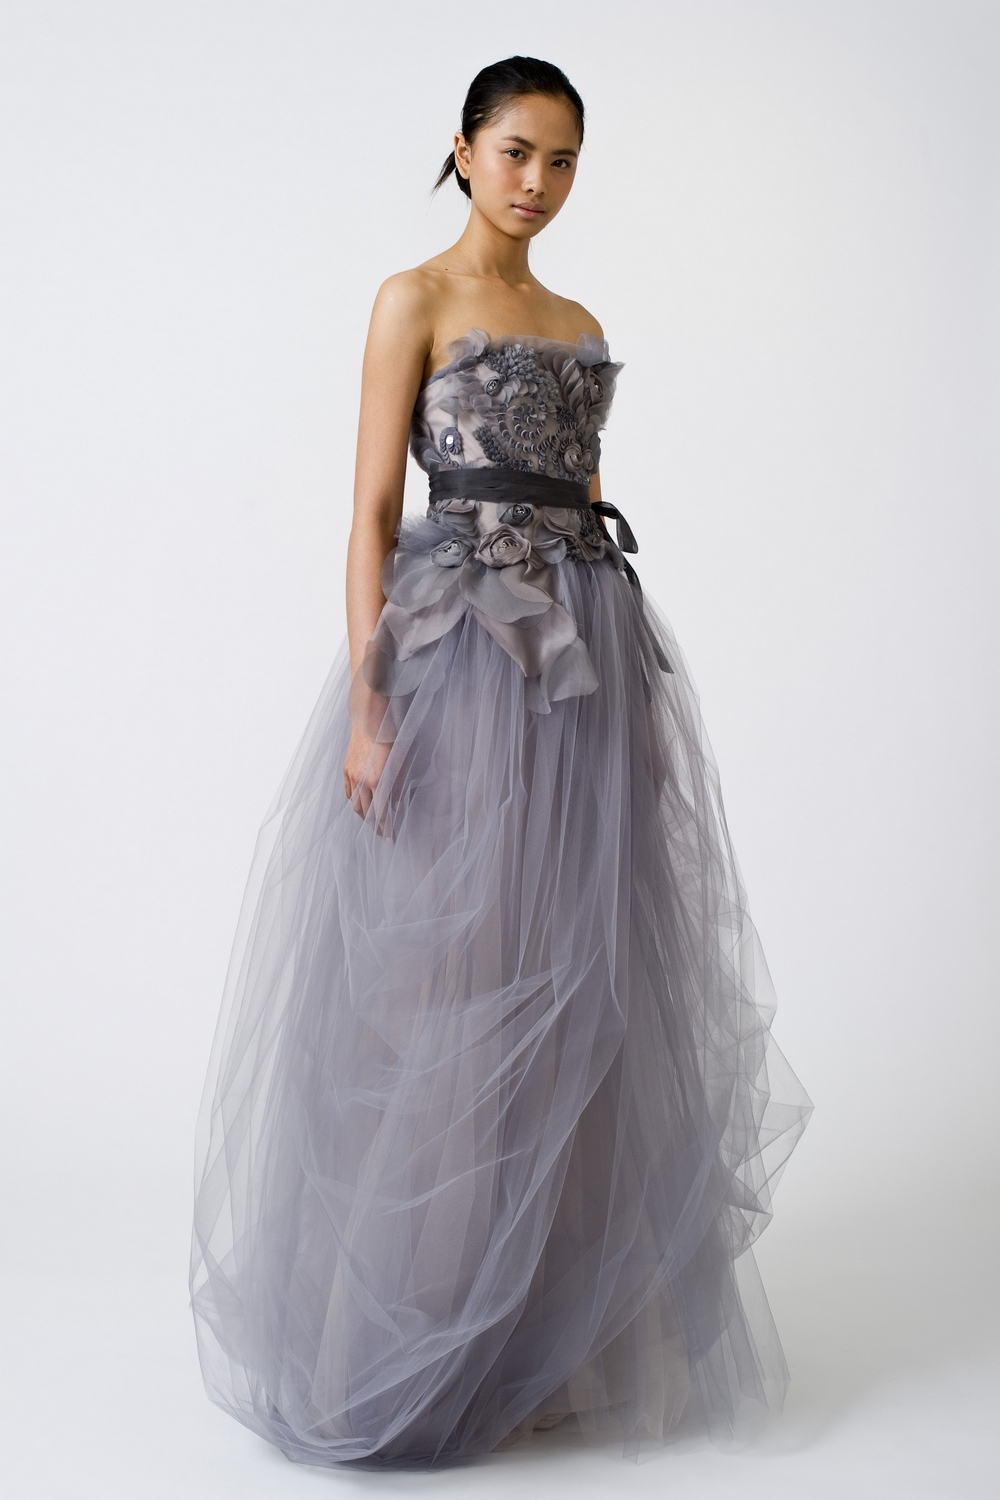 4-spring-2011-vera-wang-wedding-dress-color-lilac-tulle-beading.full